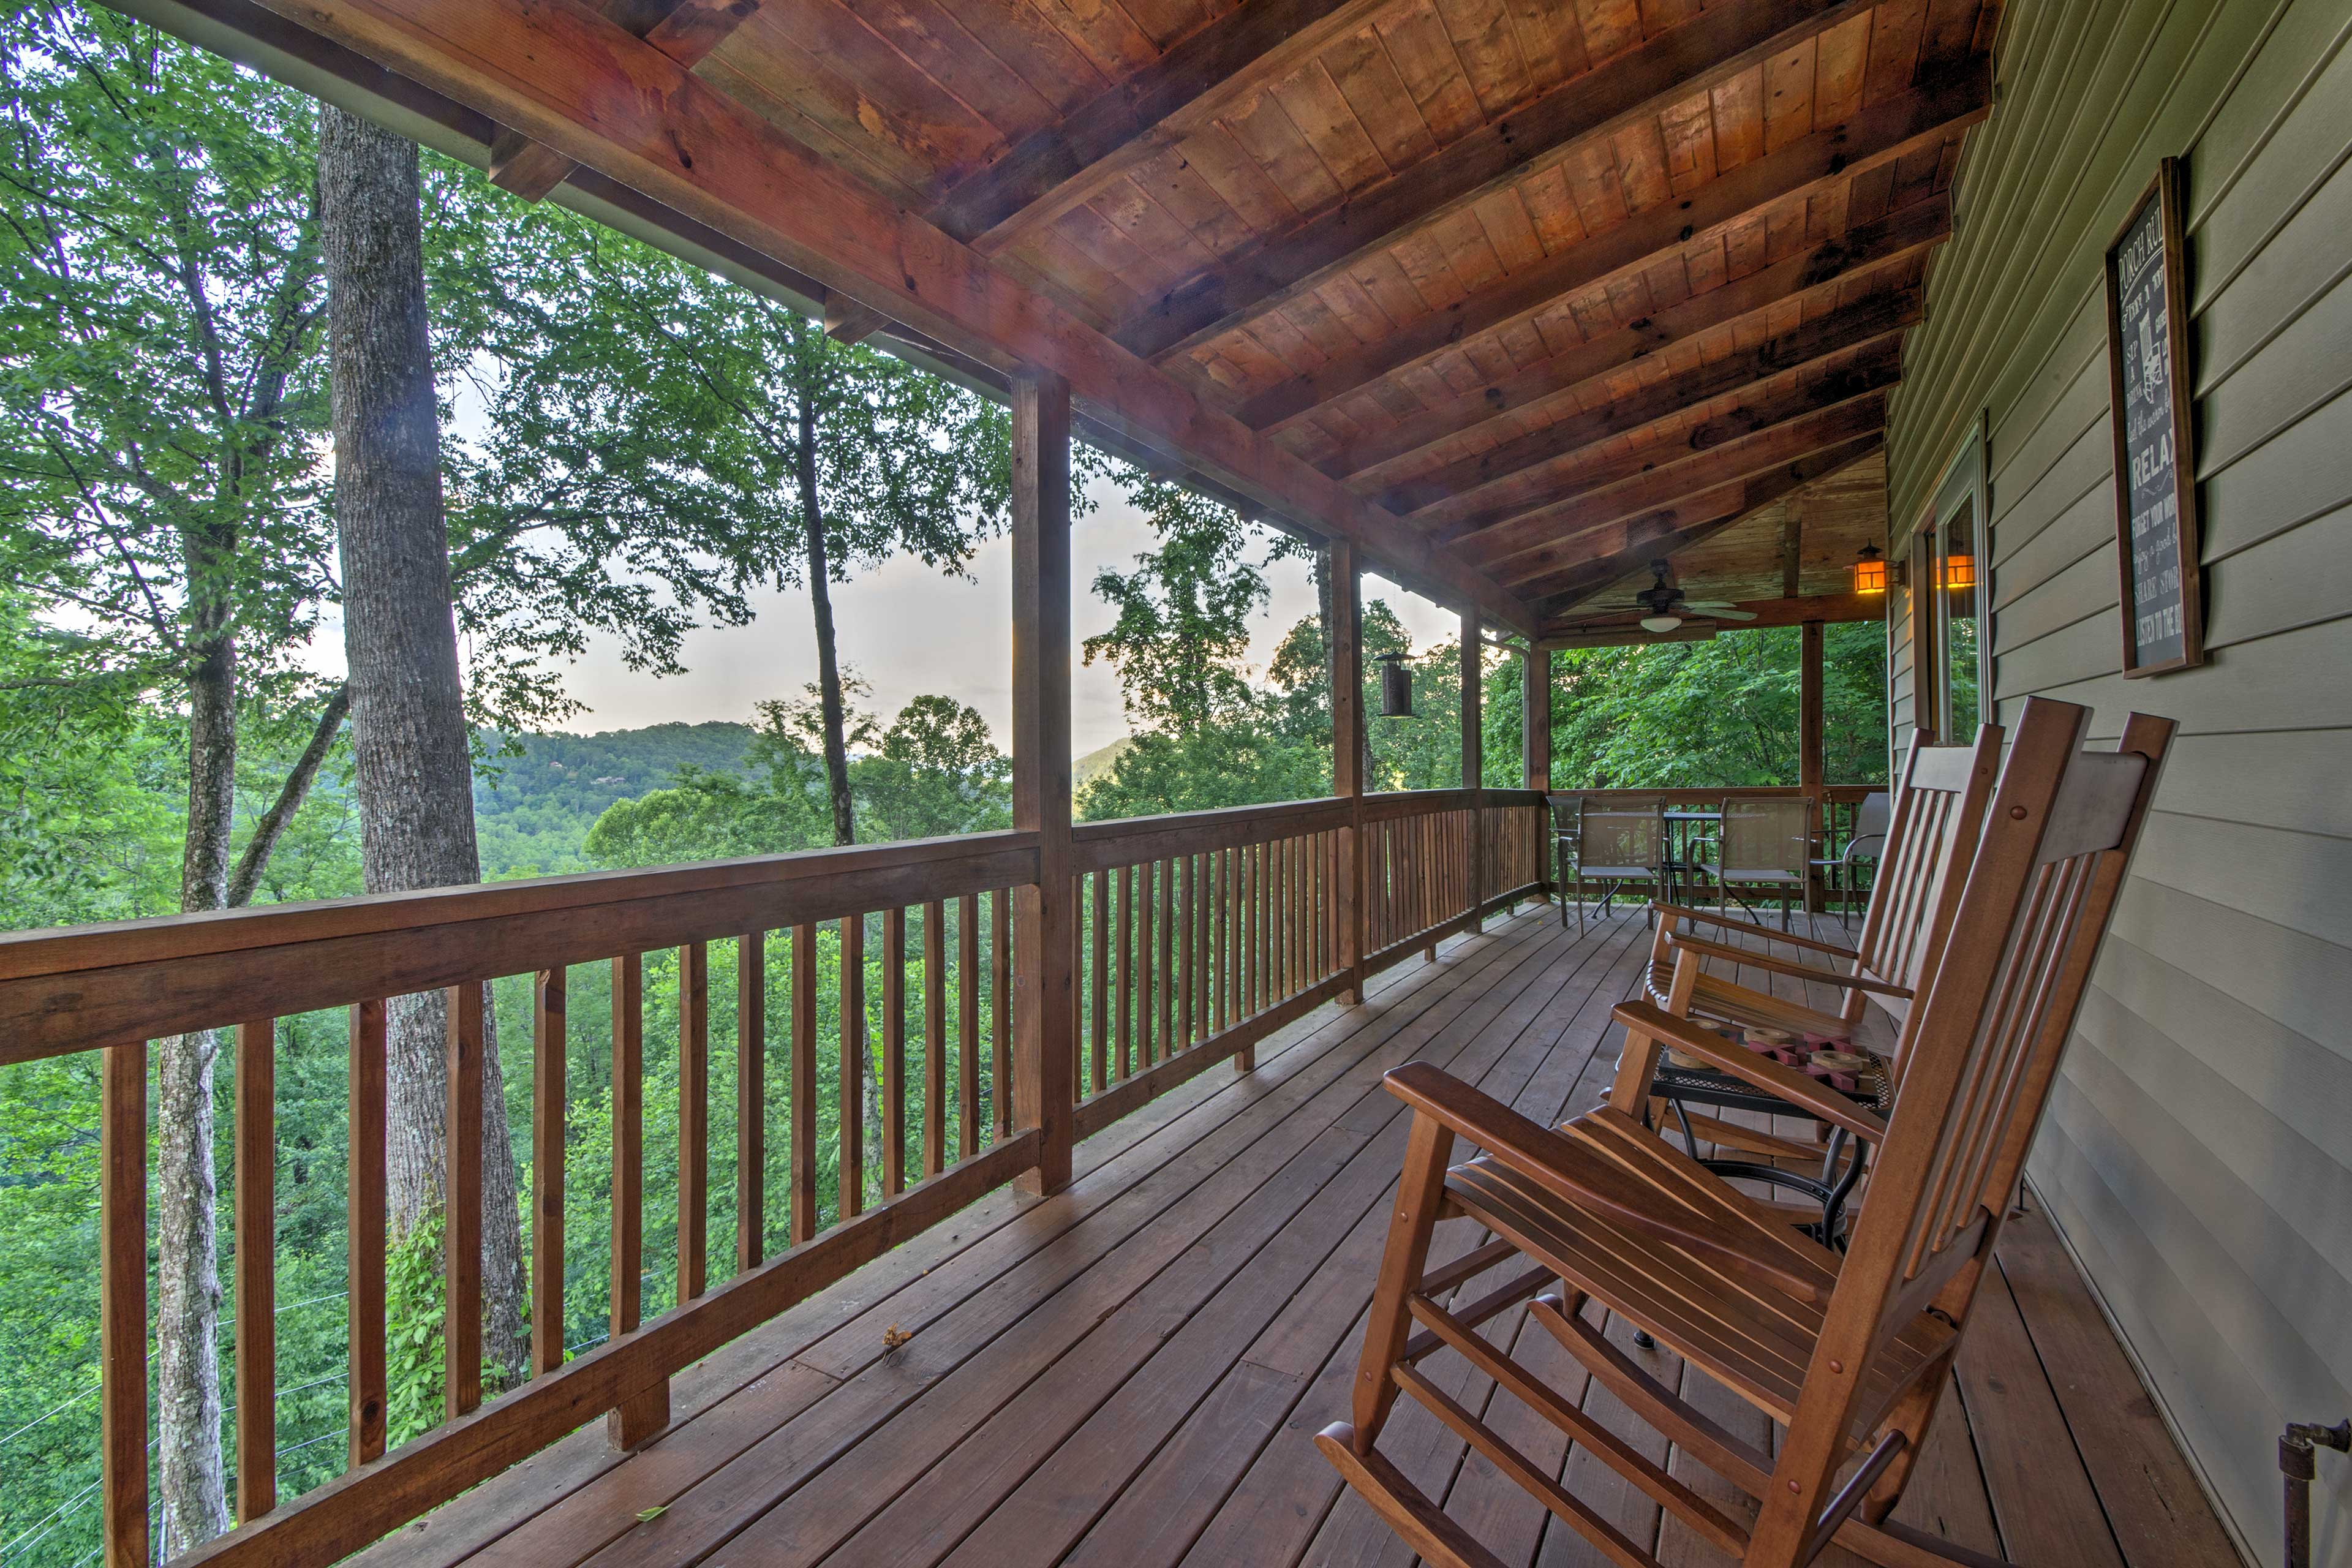 The porch is perfect for relaxing in any season.